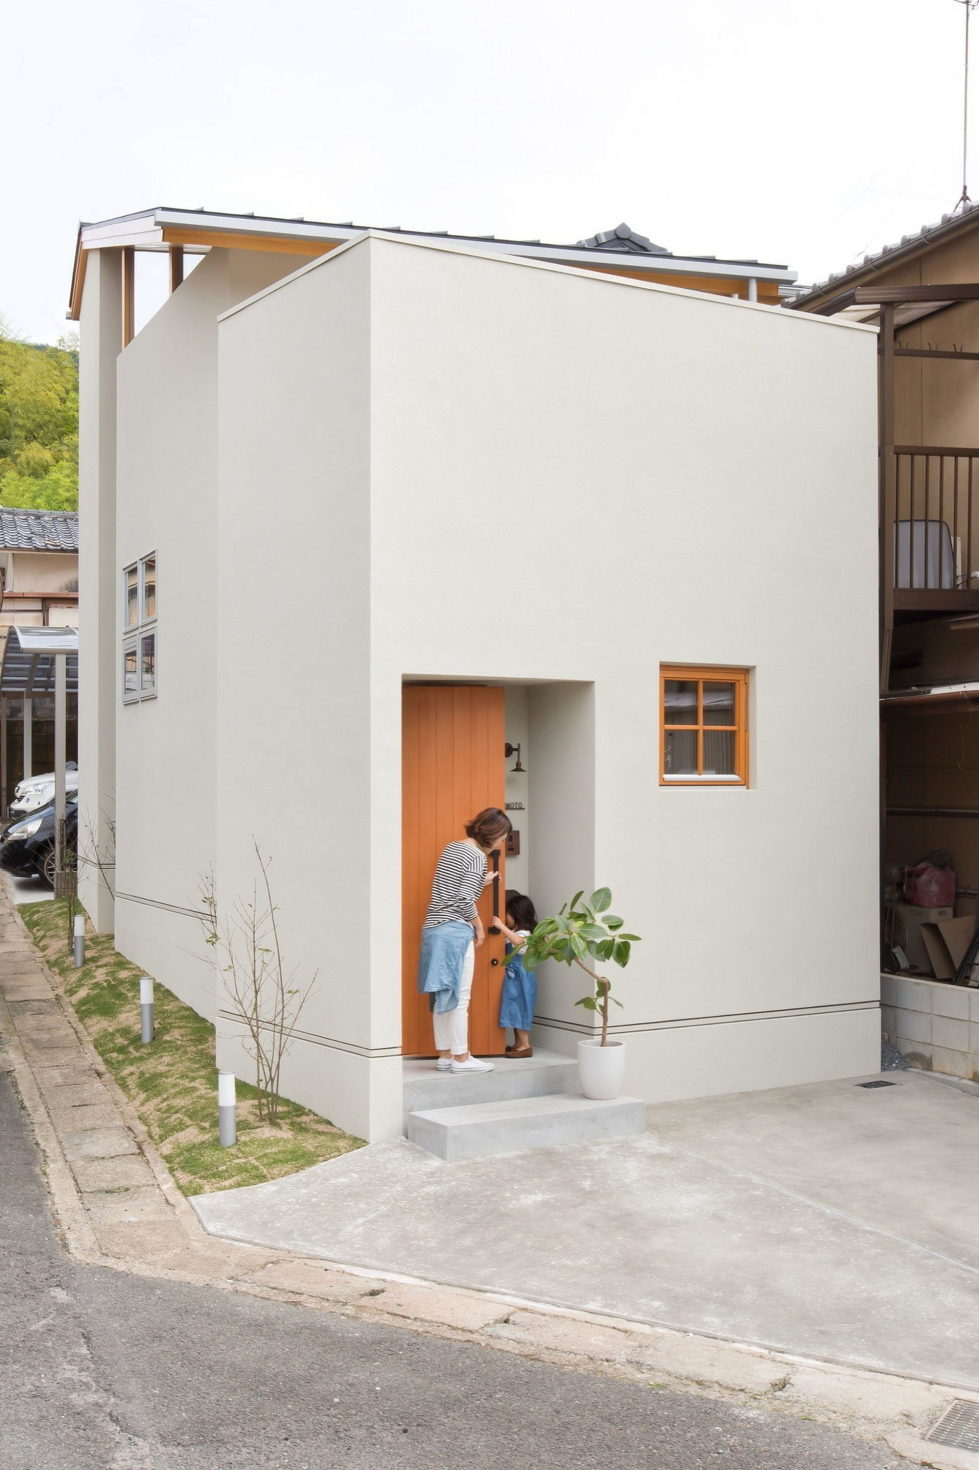 The House In Nipponese Minimalism In Kyoto By ALTS Design Office 2